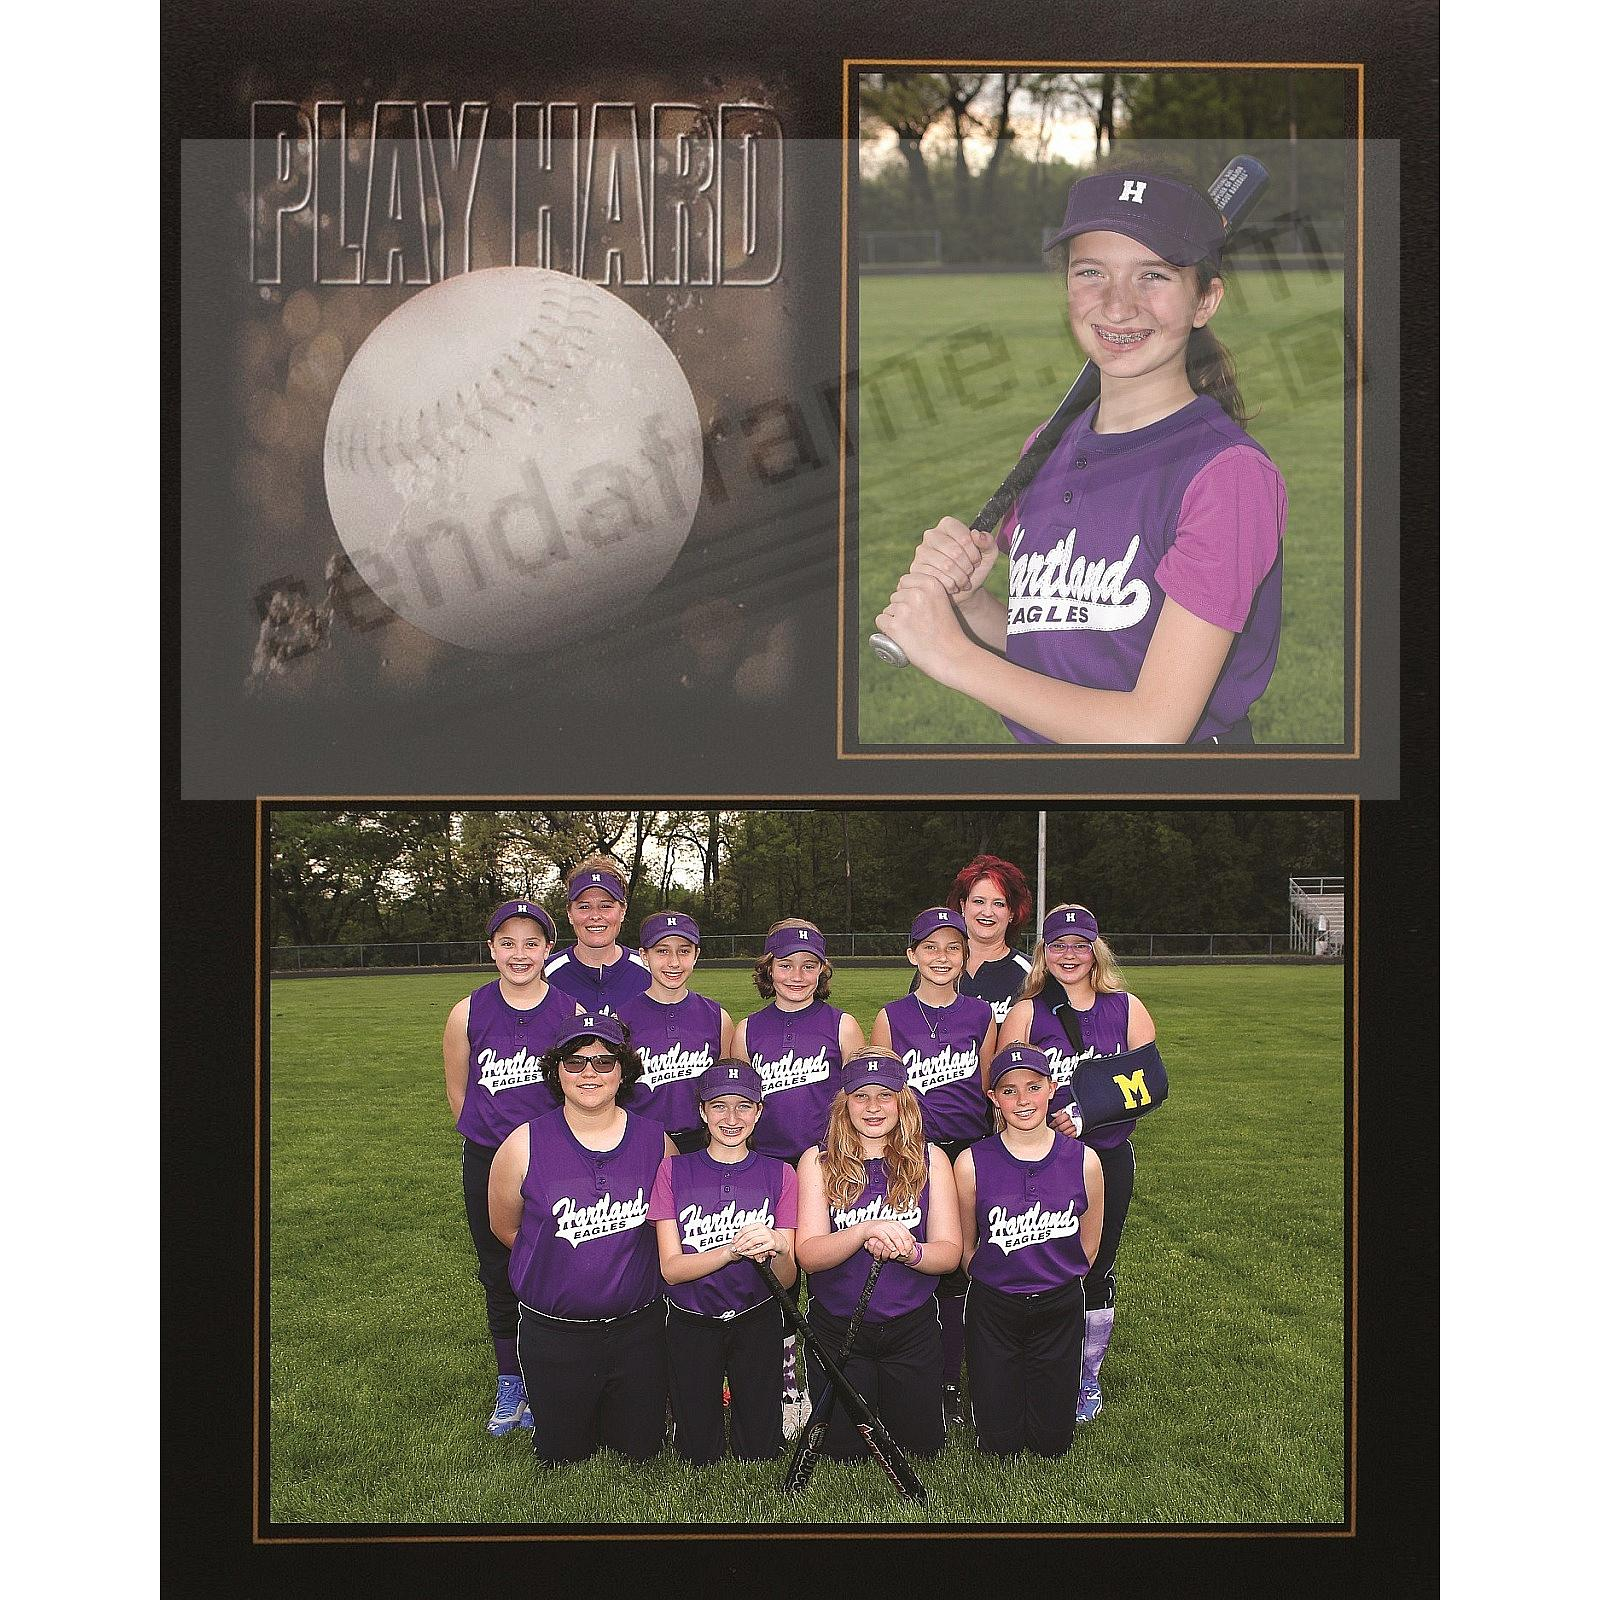 PLAY HARD Softball Player/Team 7x5/3½x5 MEMORY MATES cardstock double photo frame (sold in 10's)